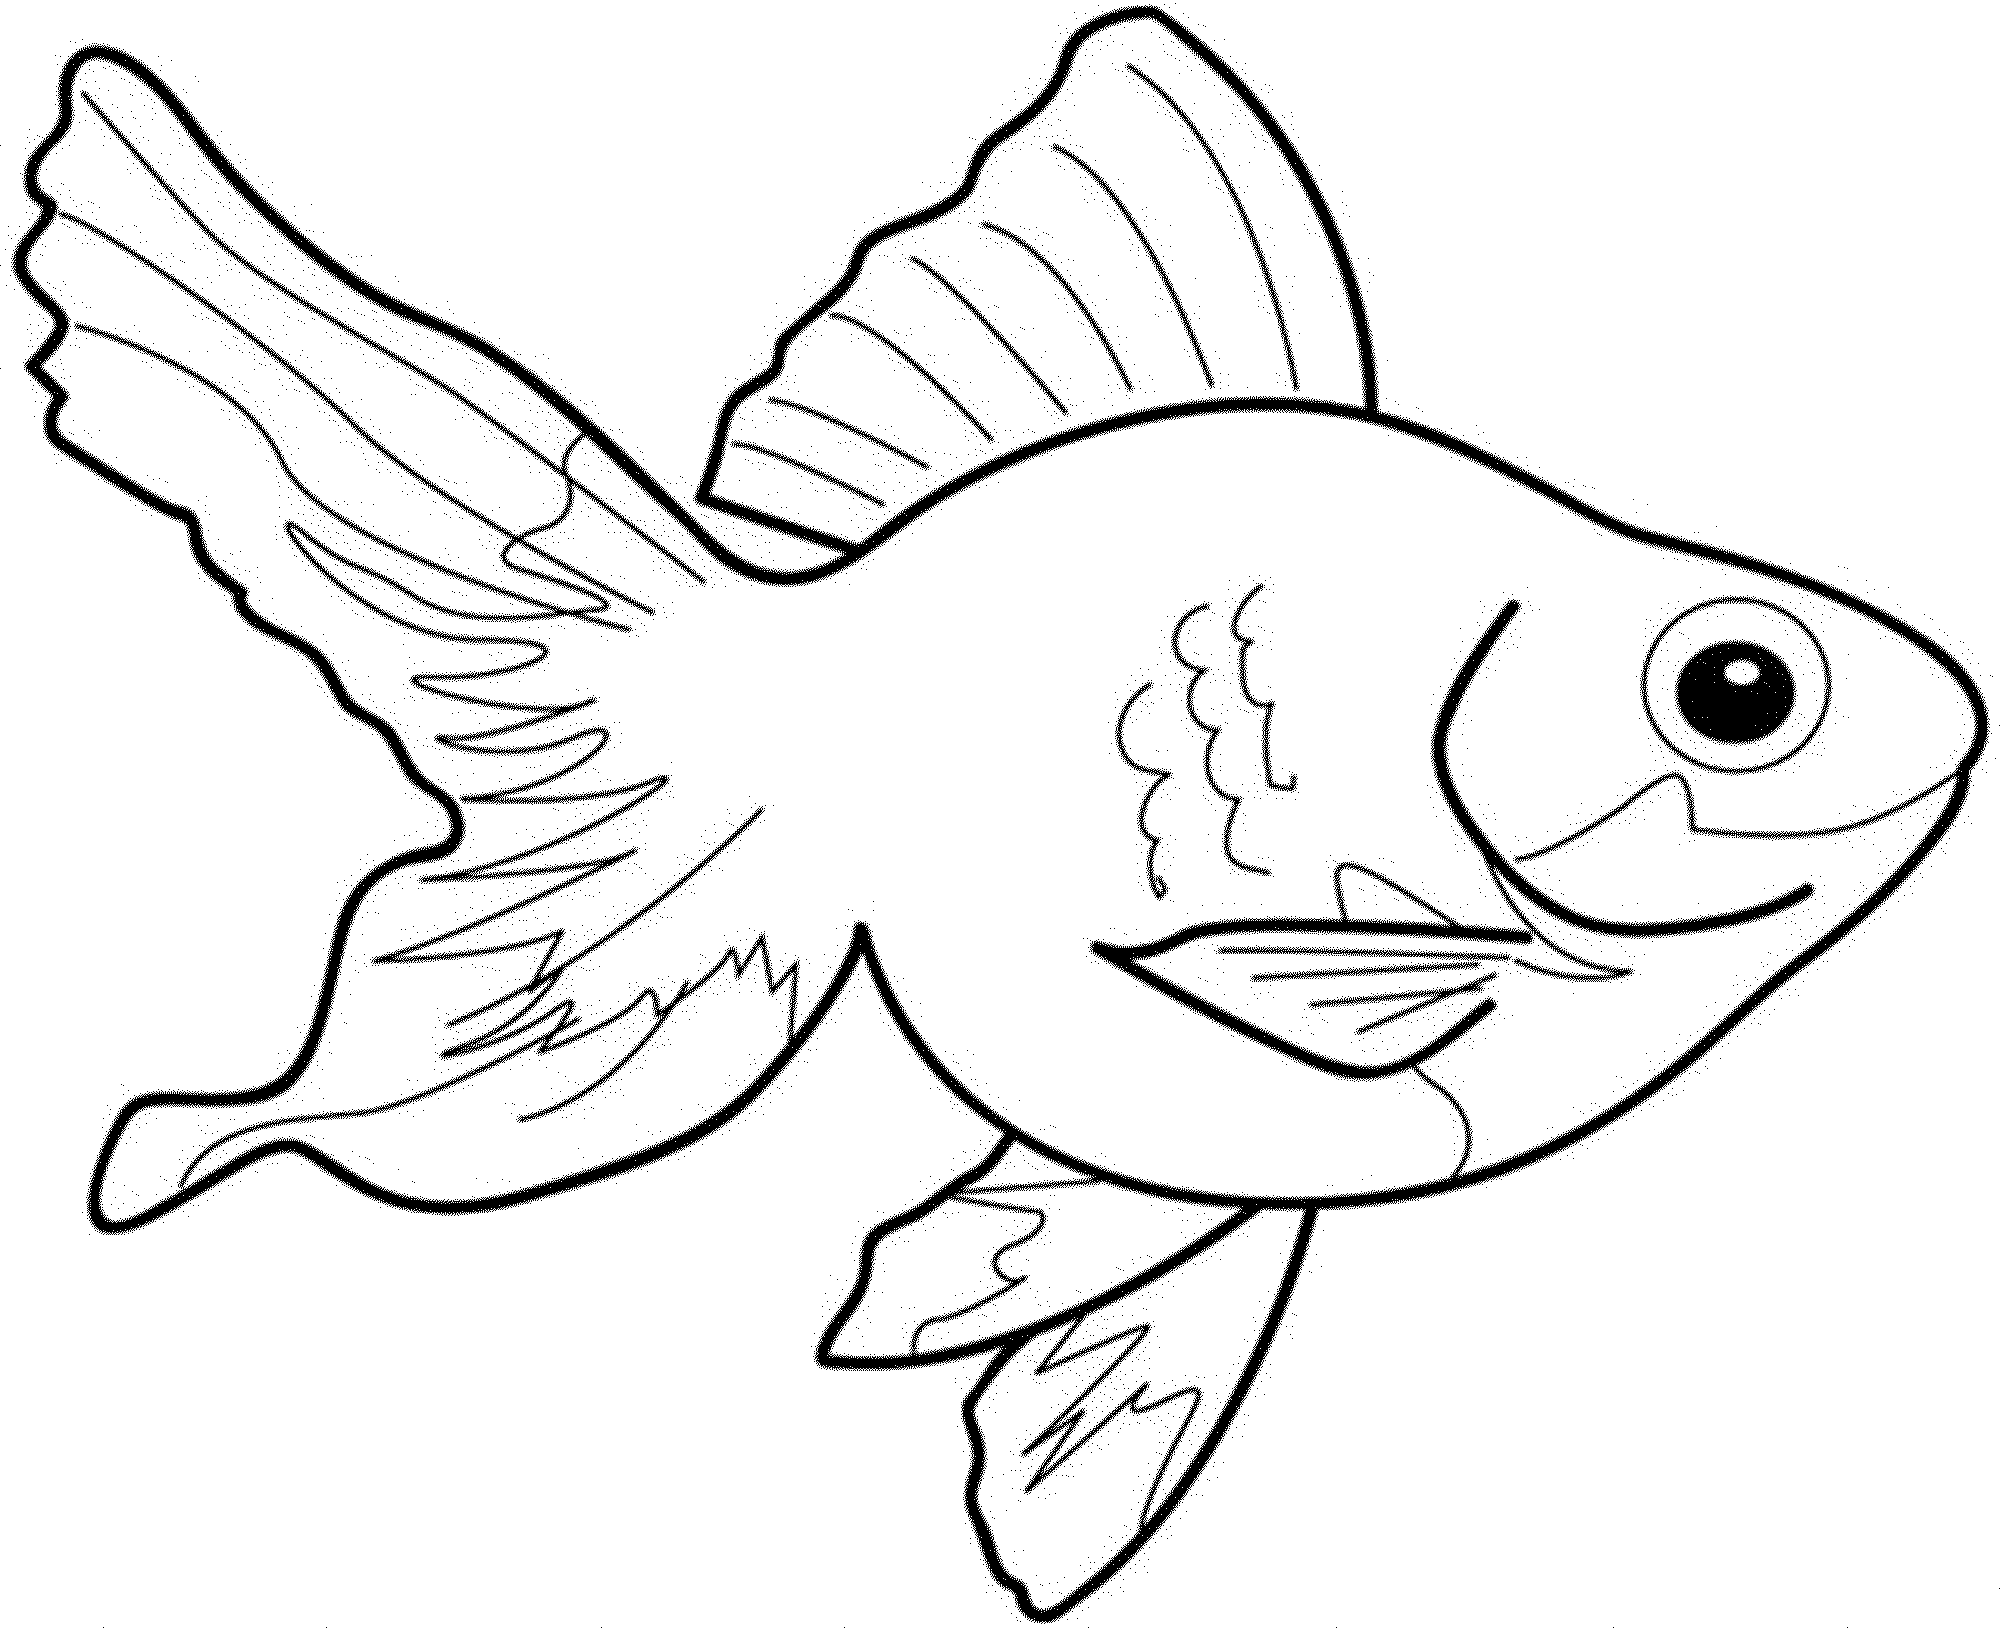 bass-fish-coloring-pages | | BestAppsForKids.com